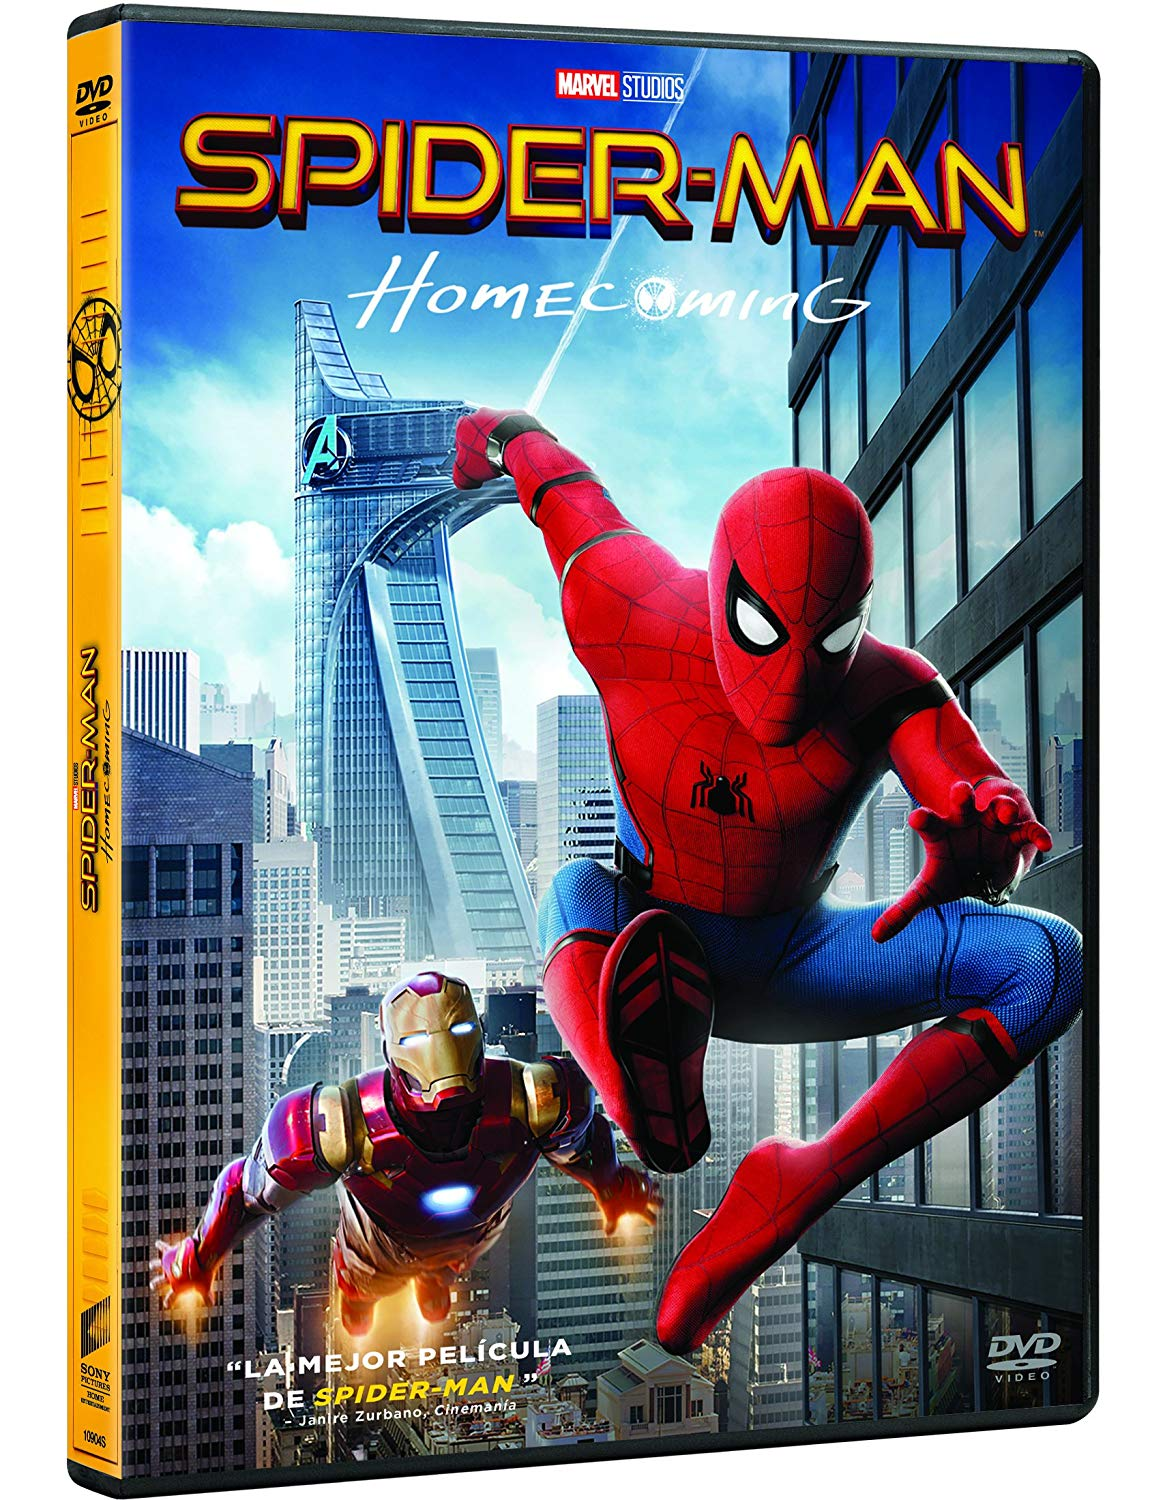 peliculas Spiderman Home Coming